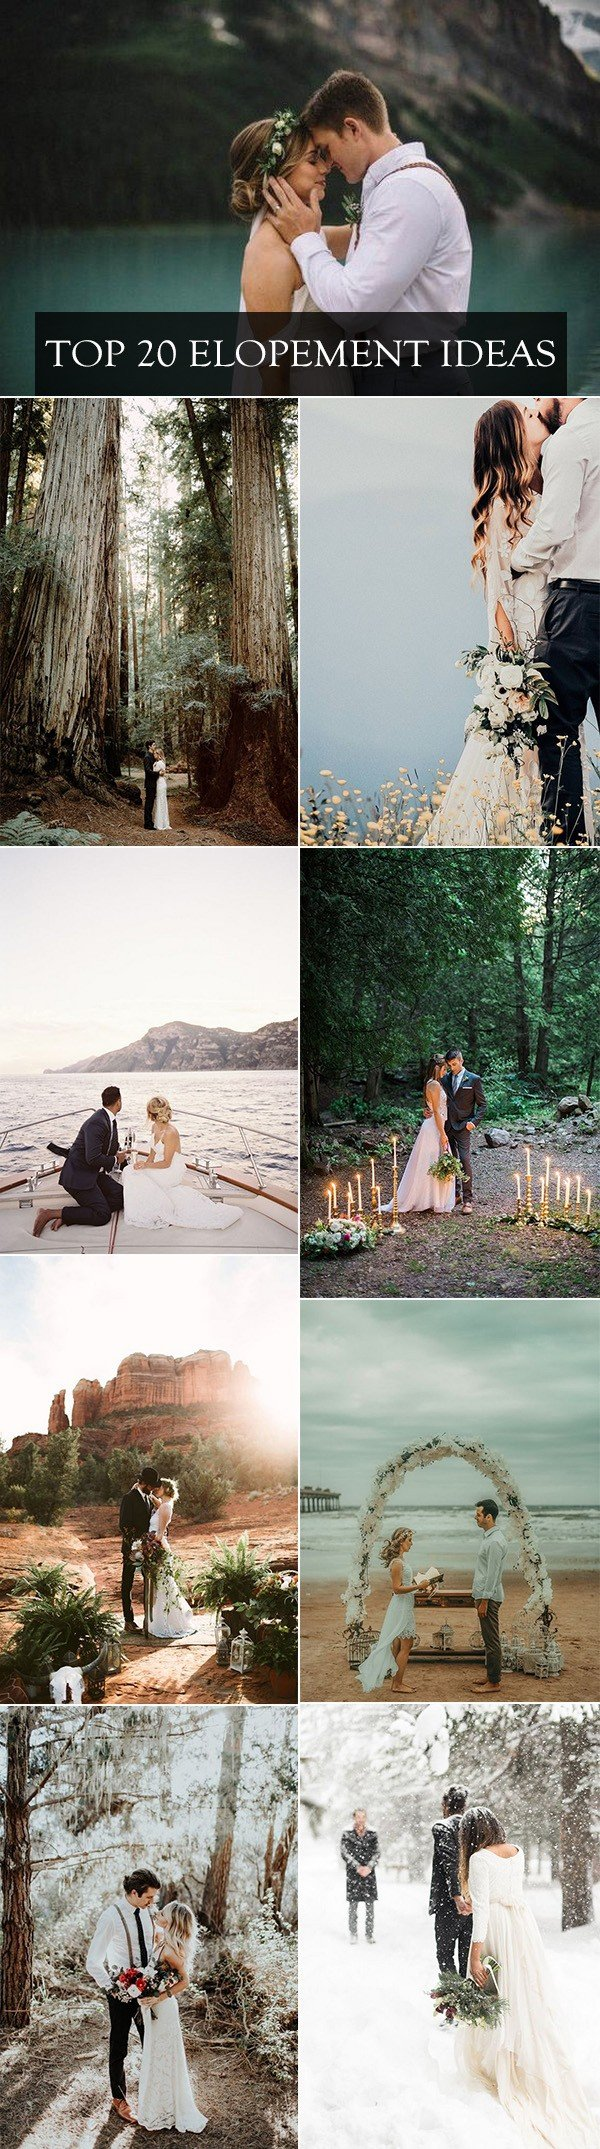 top 20 elopement ideas for 2018 trends